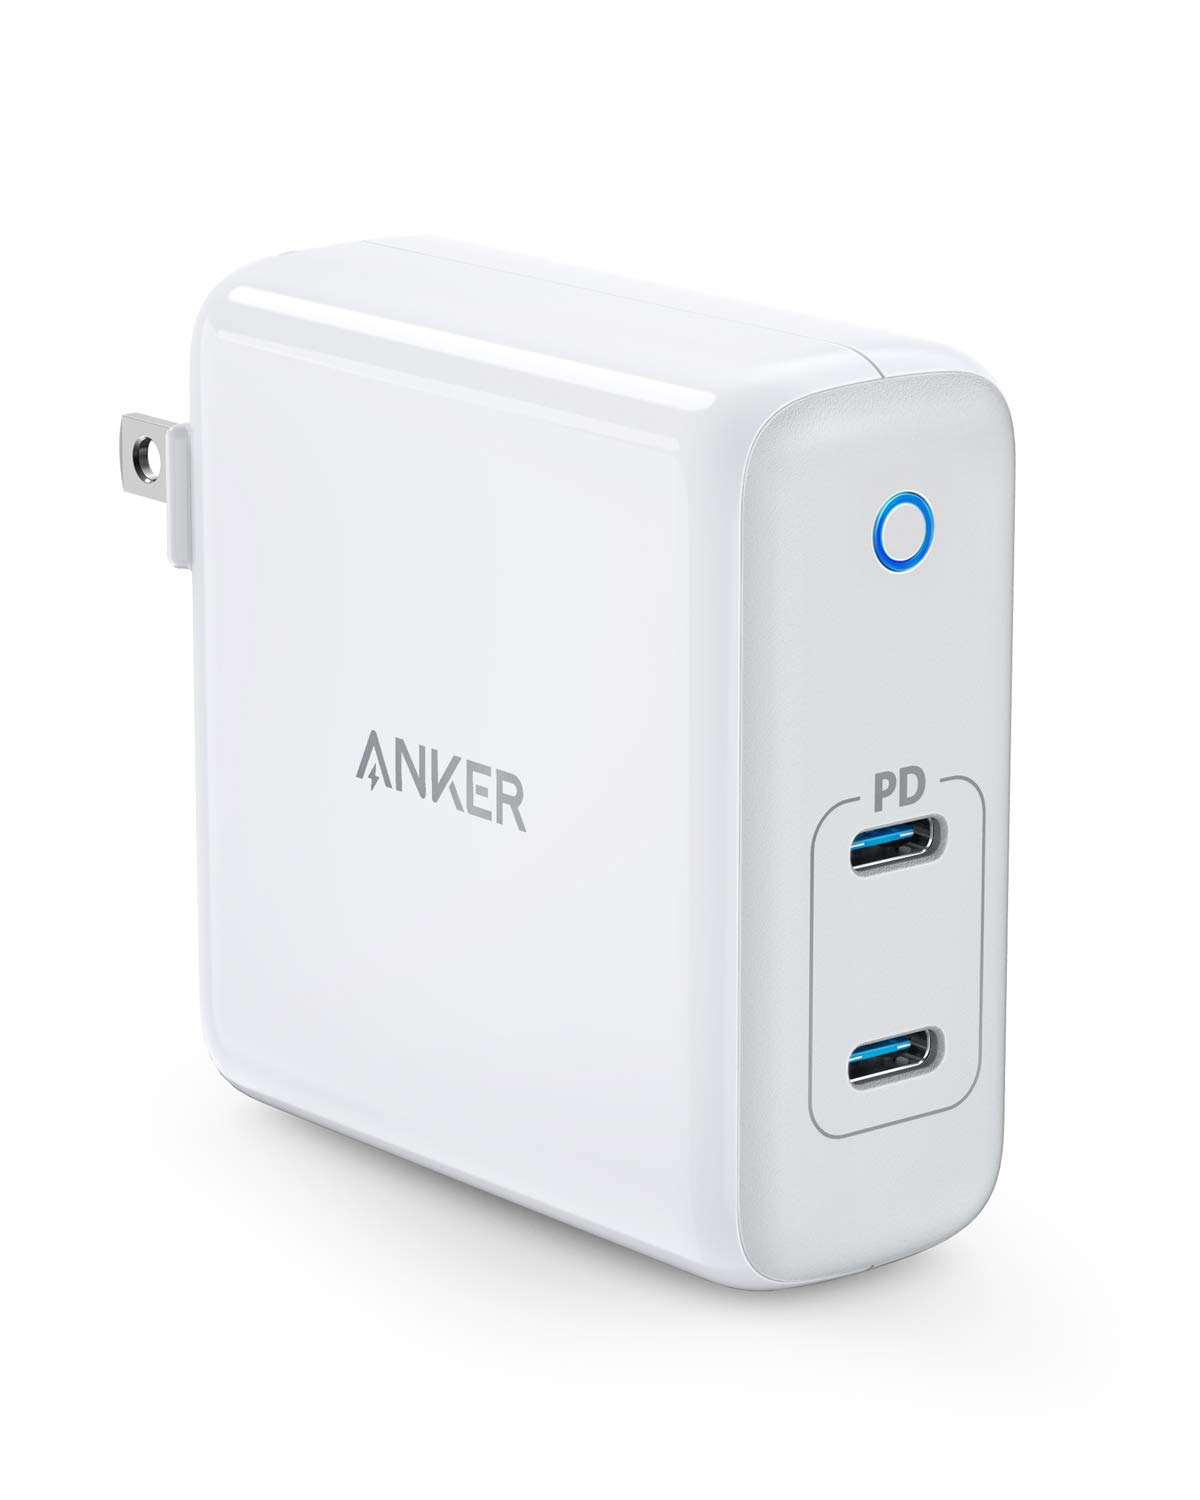 Anker 60W 2-Port USB C Charger, PowerPort Atom PD 2 [GaN Tech] Ultra Compact Foldable Type C Wall Charger, Power Delivery for MacBook Pro/Air, iPad ...